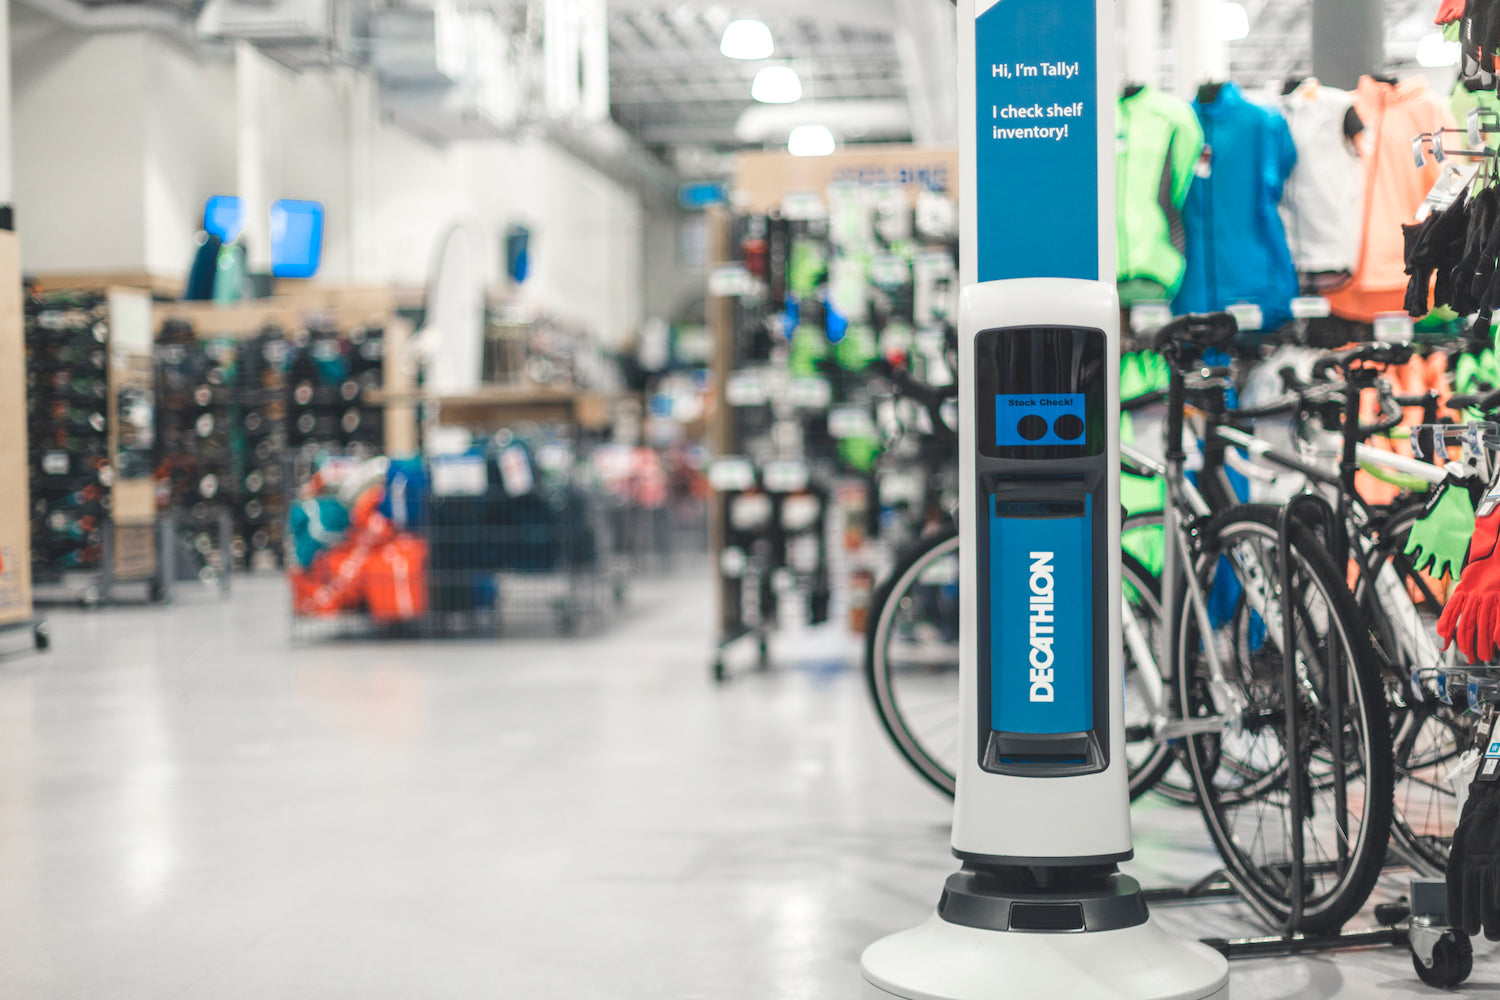 Simbe Robotics Brings 'Tally' to Streamline Decathlon's Store Experience